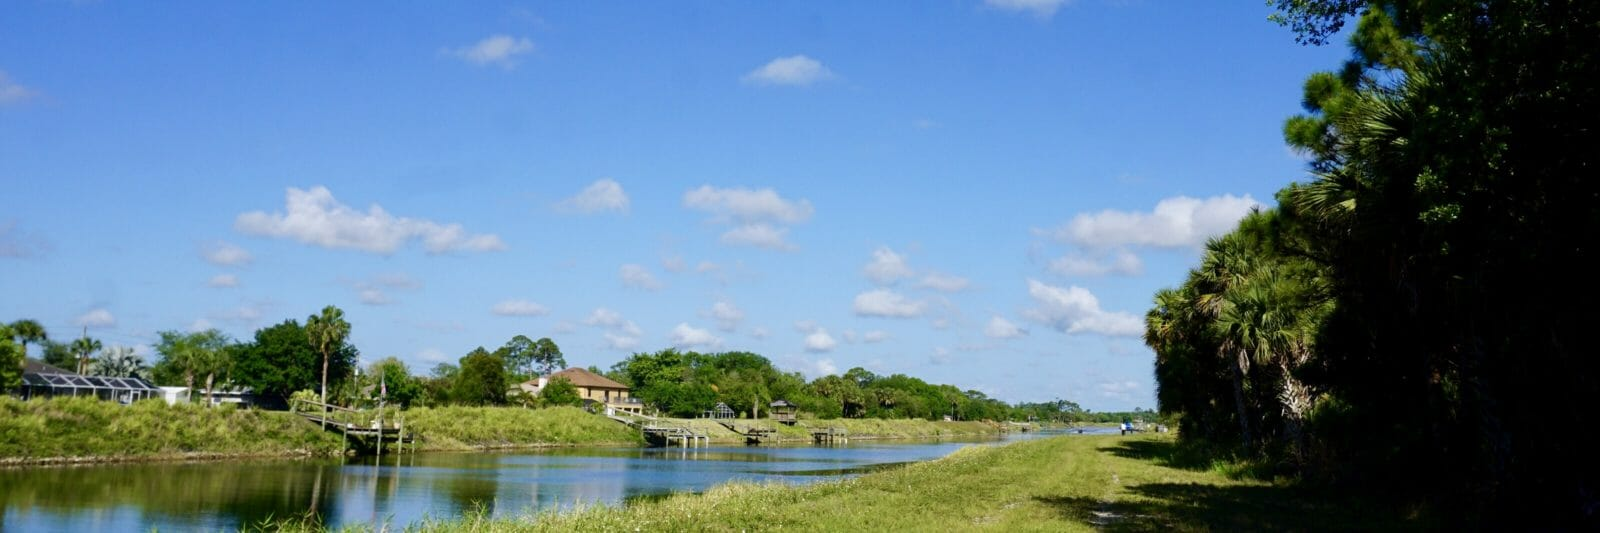 Canal in Port St Lucie